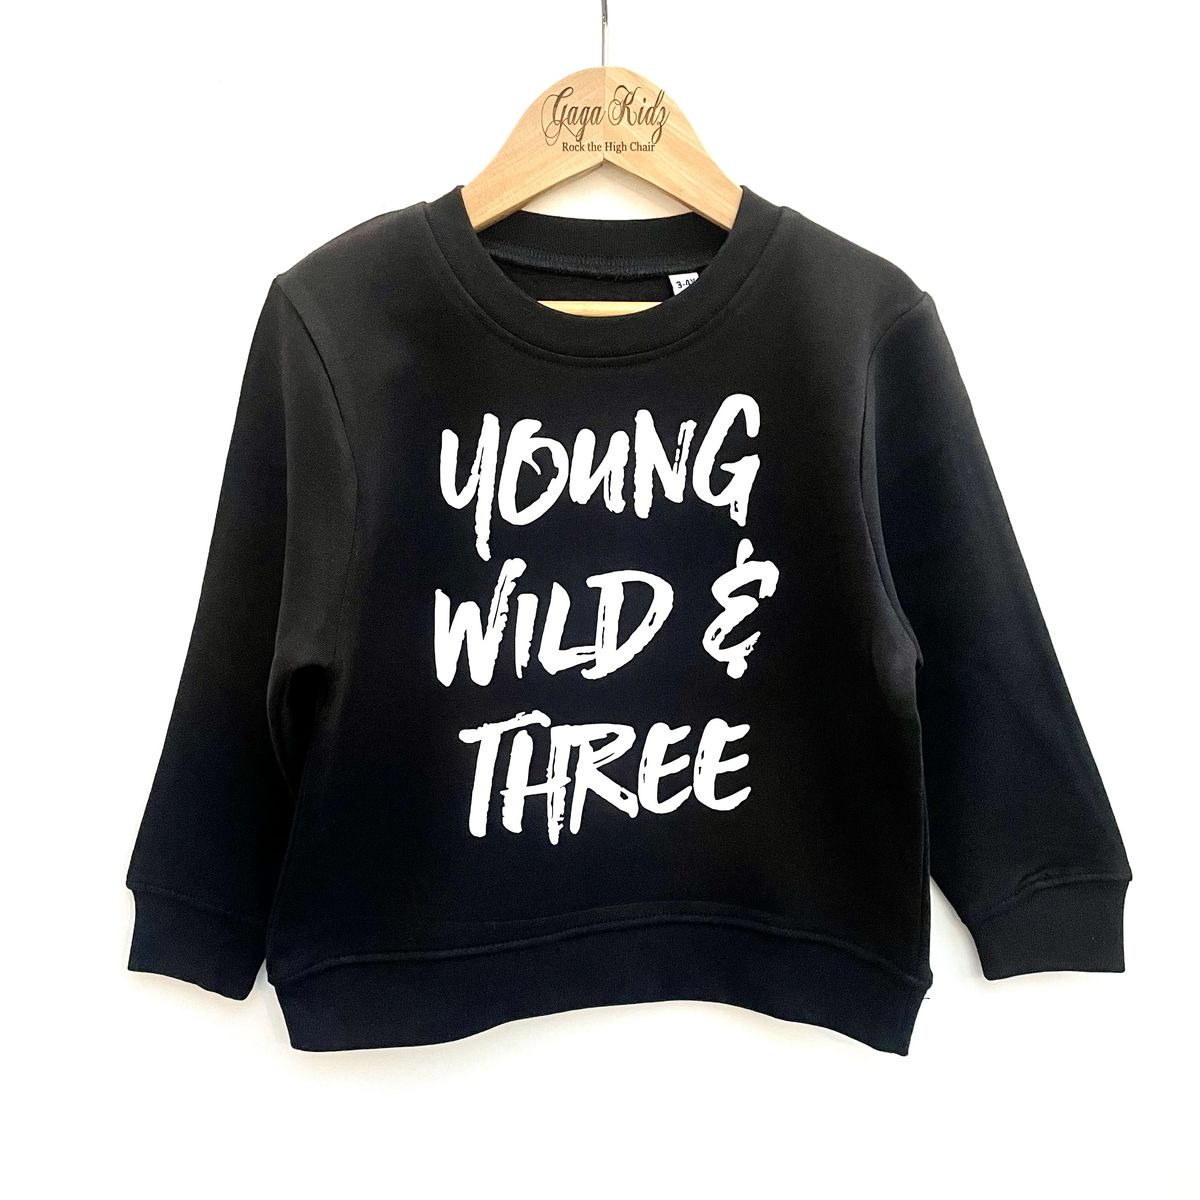 Young Wild & Three Sweatshirt - product images  of